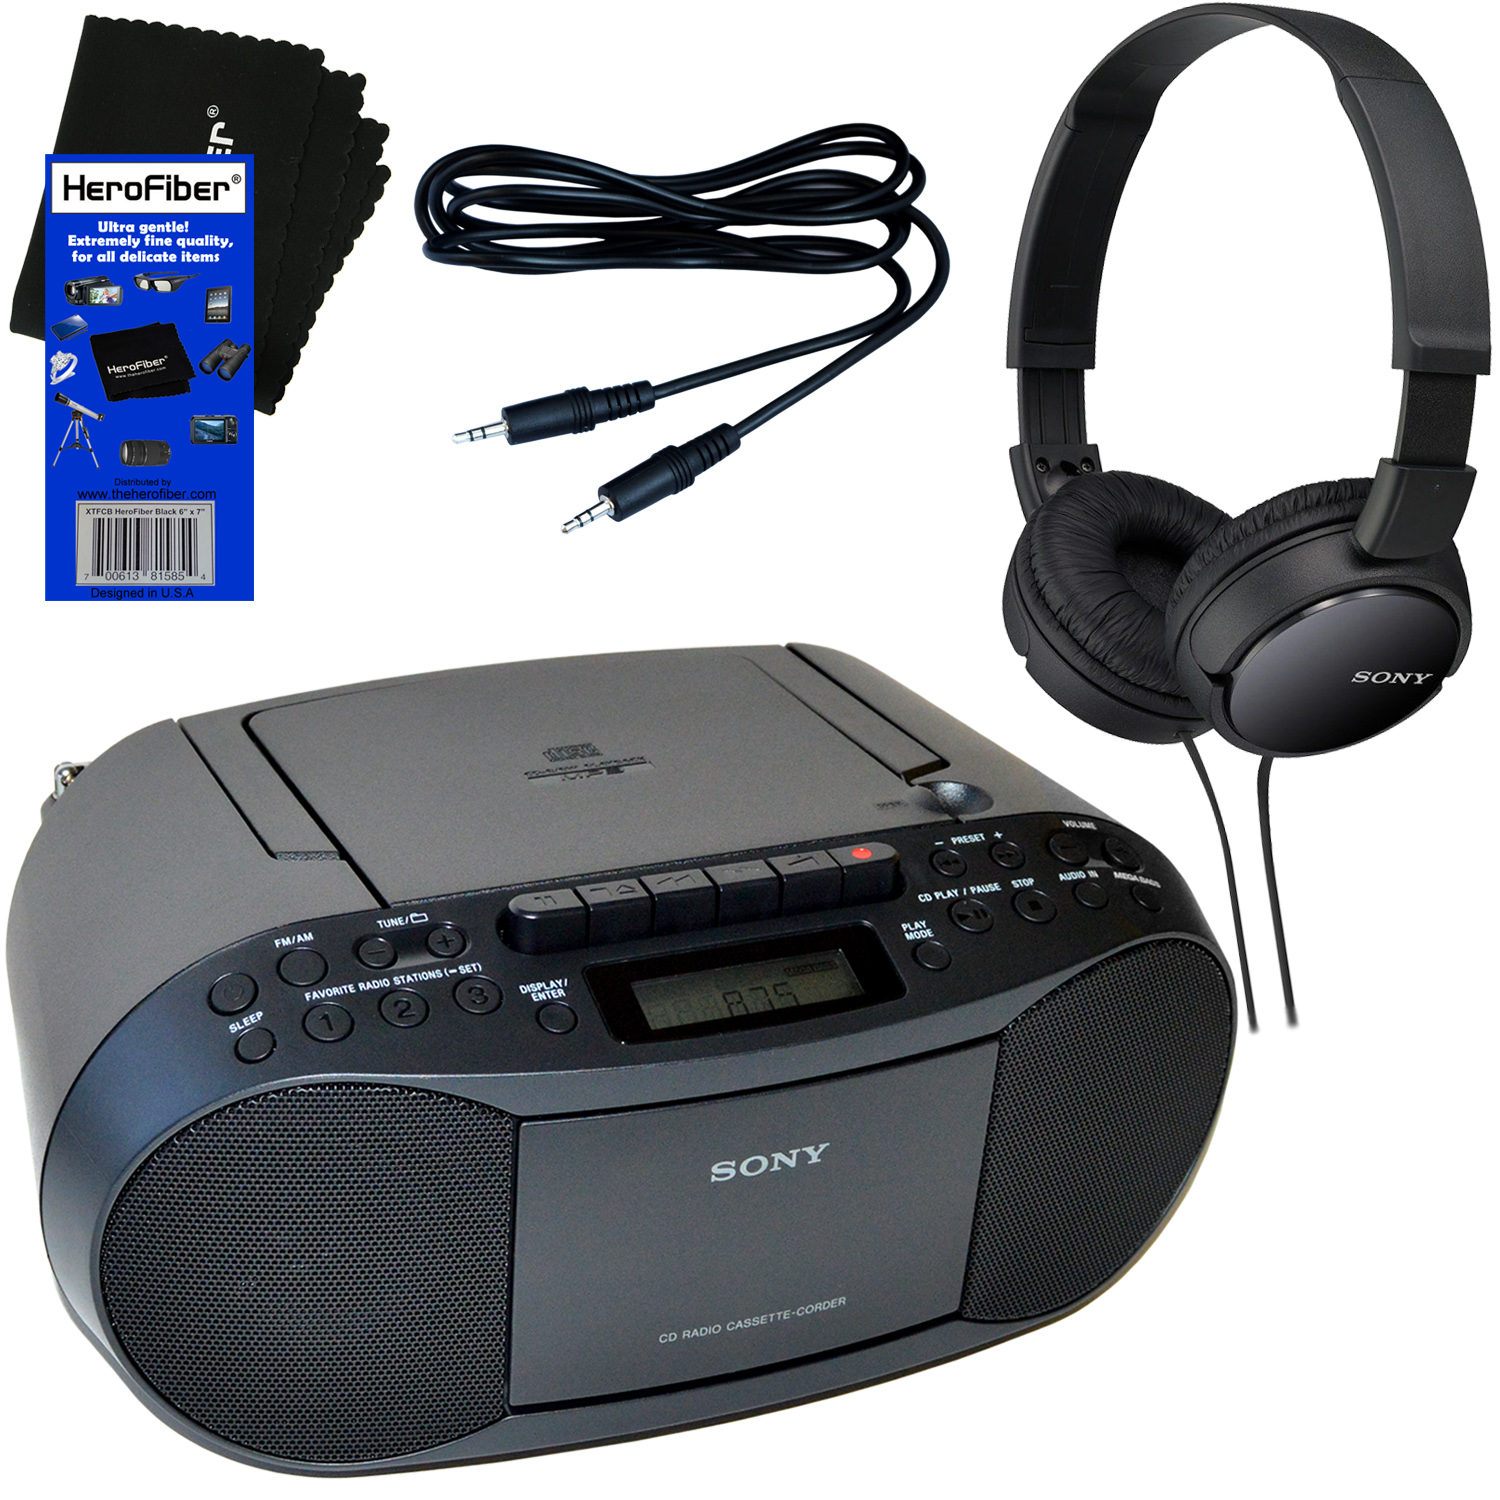 Sony Portable CD Player Boombox with AM/FM Radio \u0026 Cassette Tape + Players